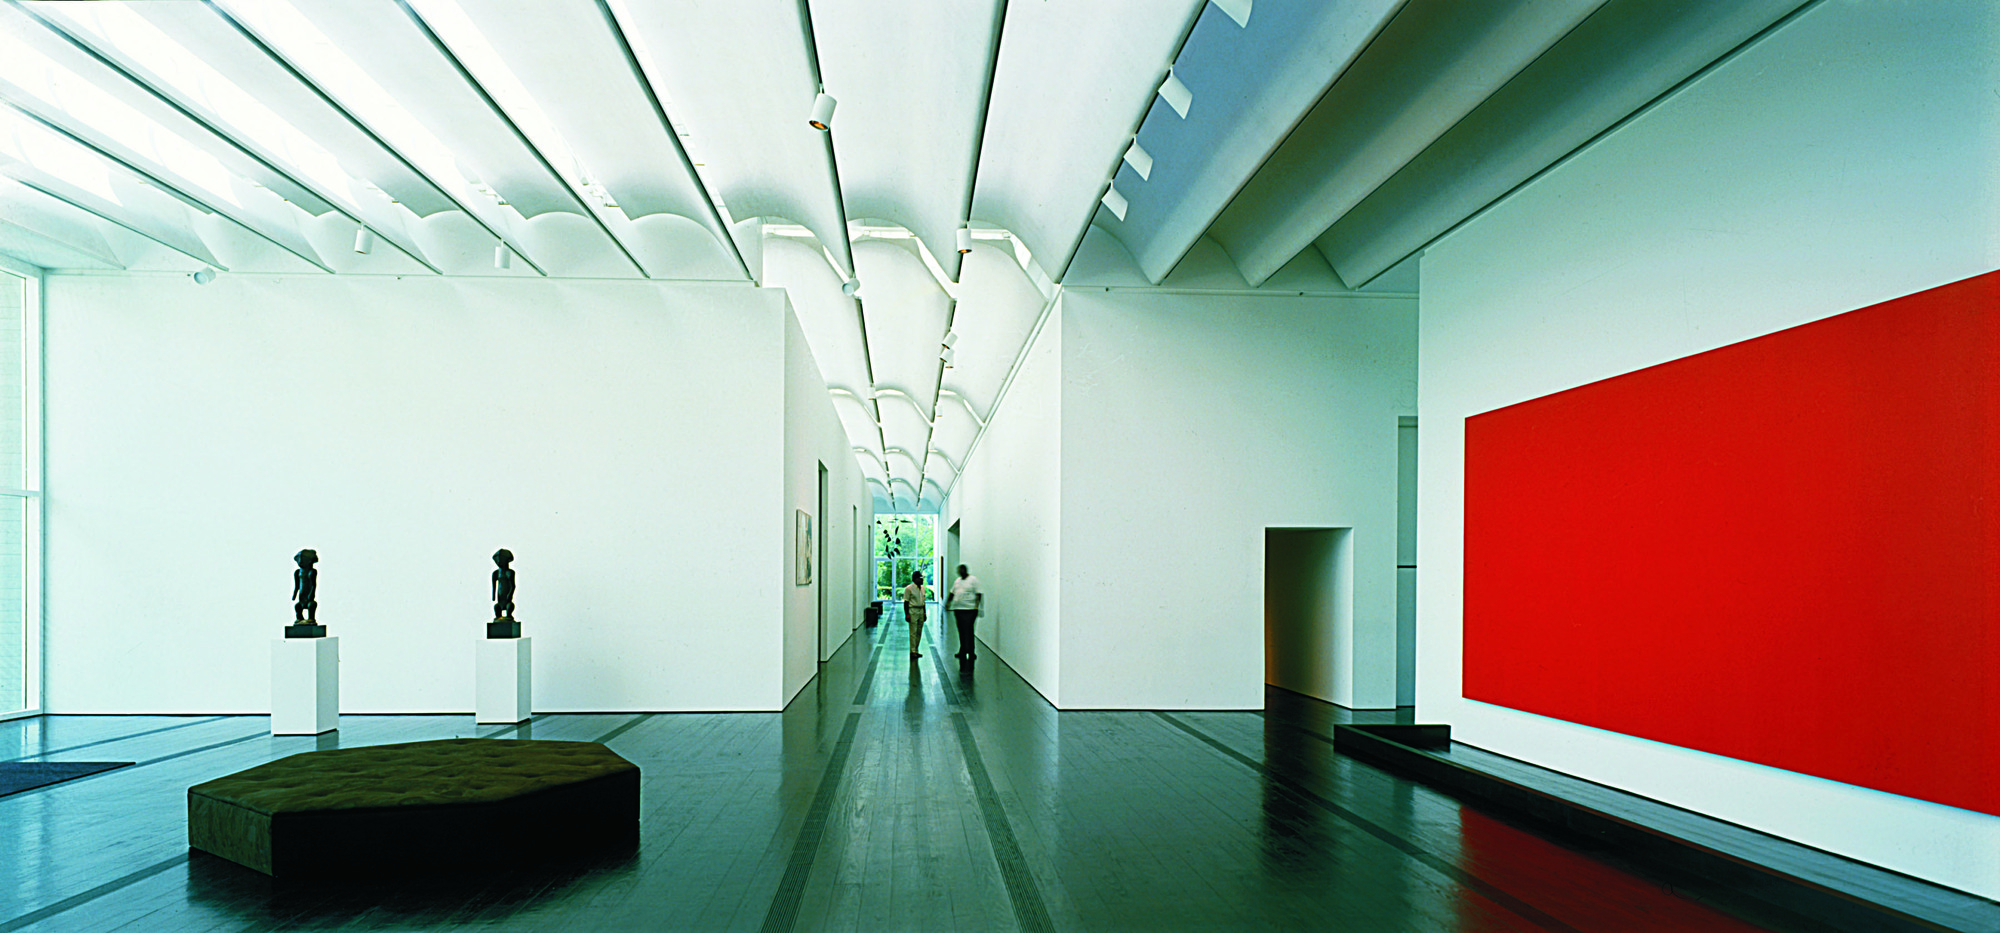 menil collection Hotels near the menil collection, houston on tripadvisor: find 15,534 traveler reviews, 27,526 candid photos, and prices for 30 hotels near the menil collection in houston, tx.